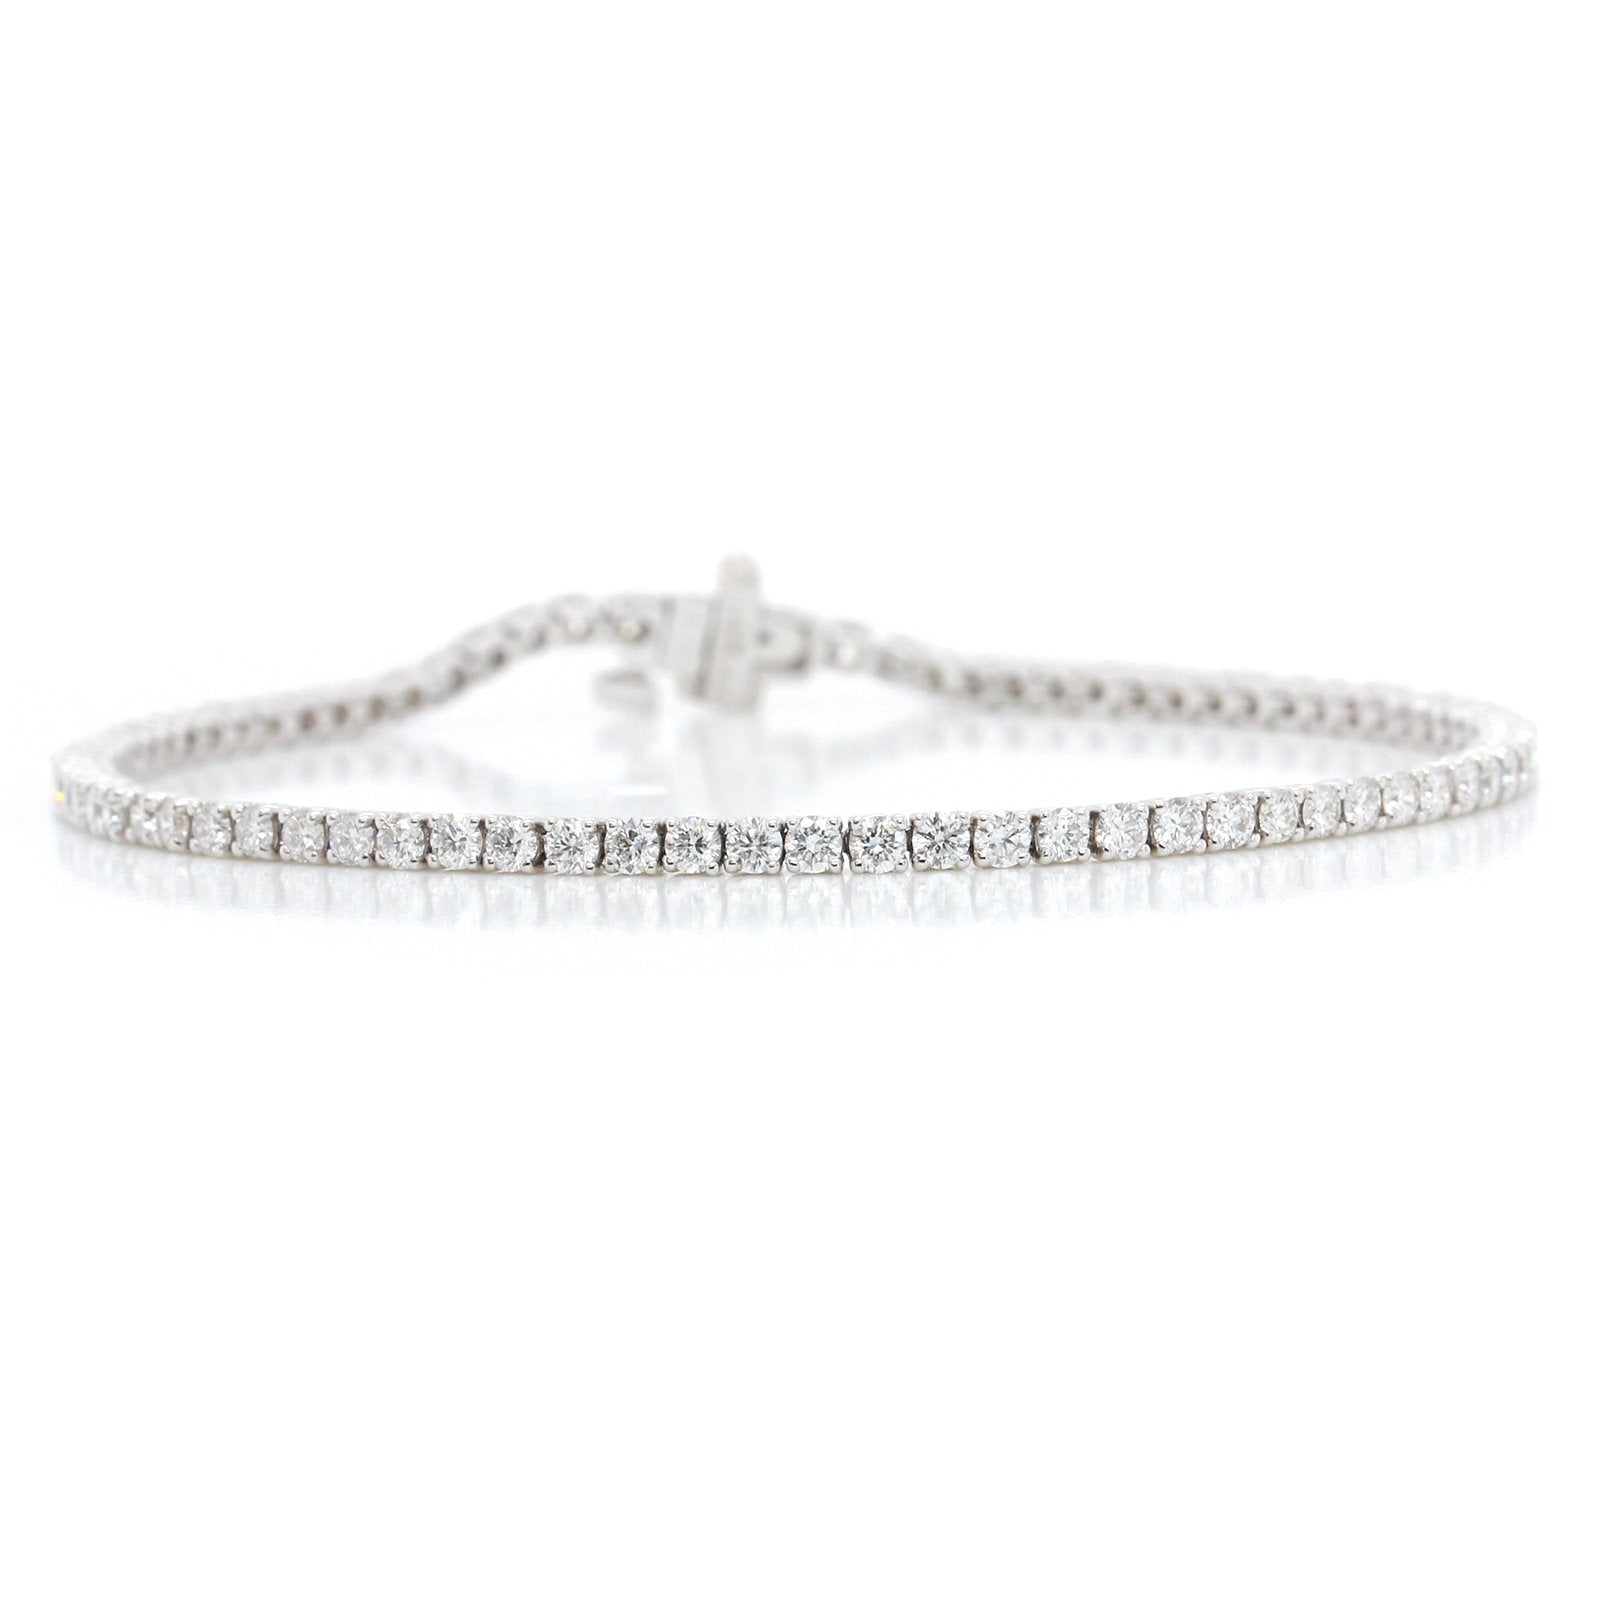 14K White Gold Four Prong Diamond Bracelet